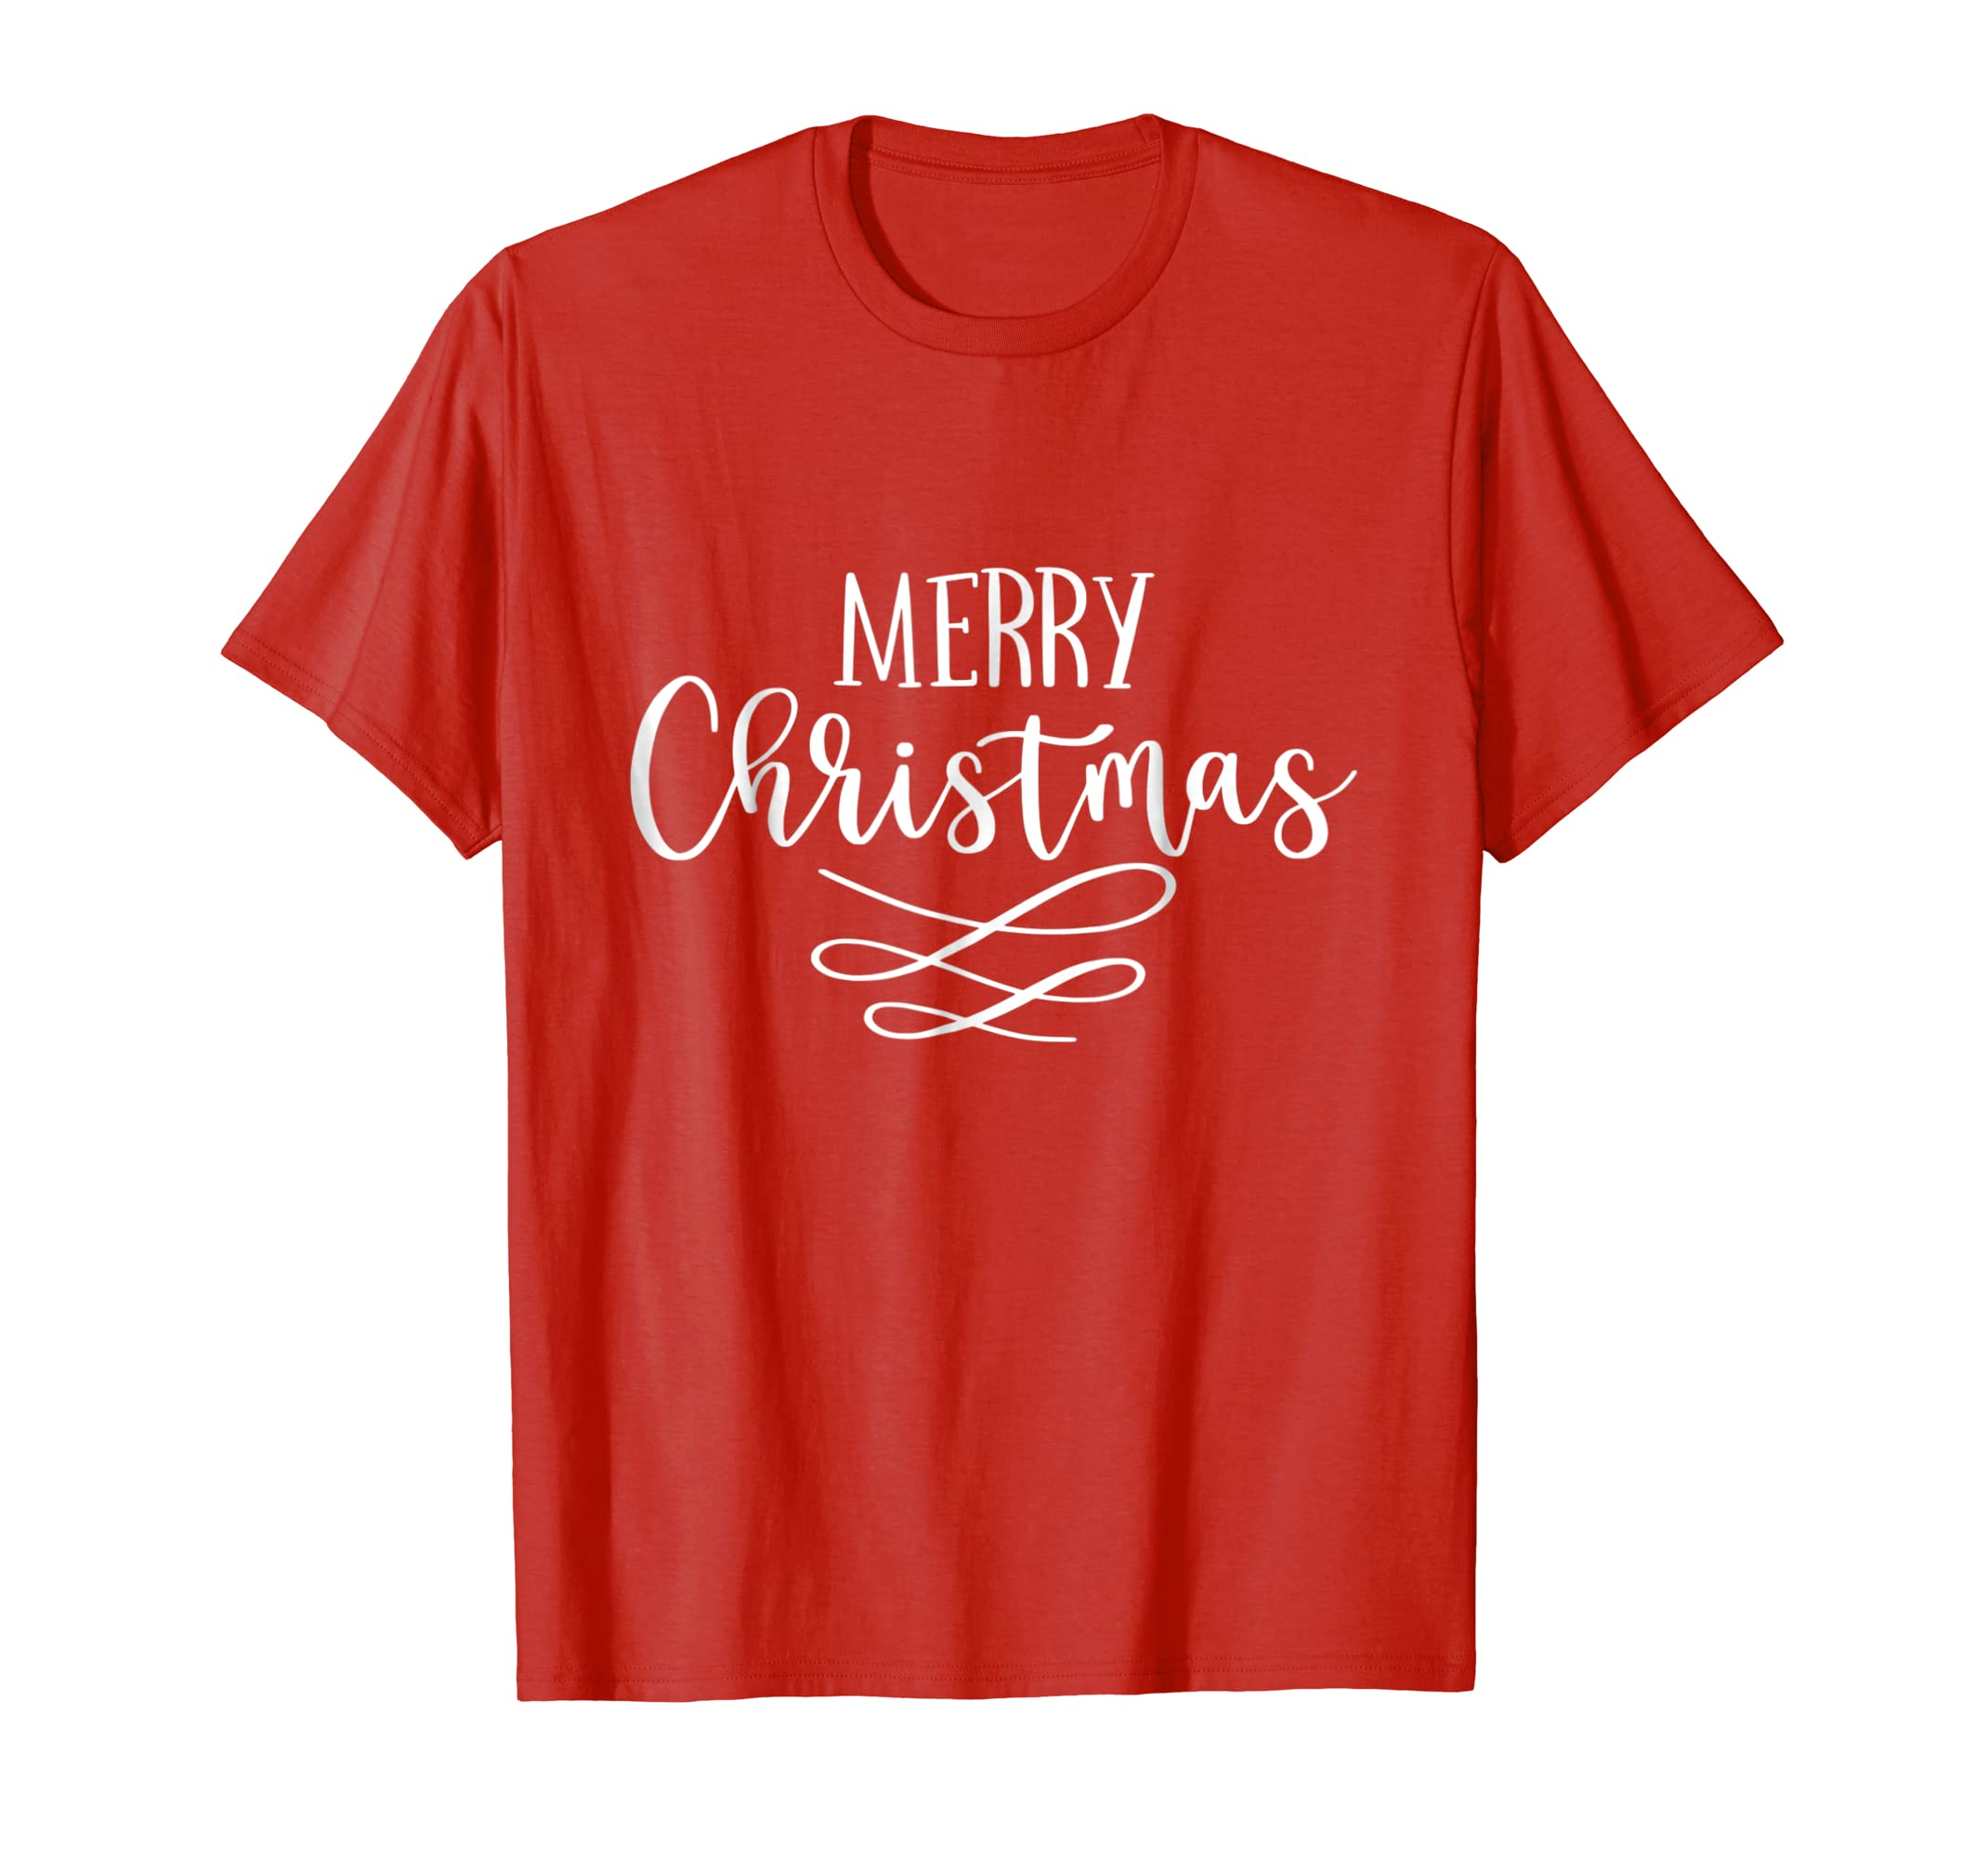 Merry Christmas Letter T.Amazon Com Merry Christmas Best Hand Letter T Shirt For Men